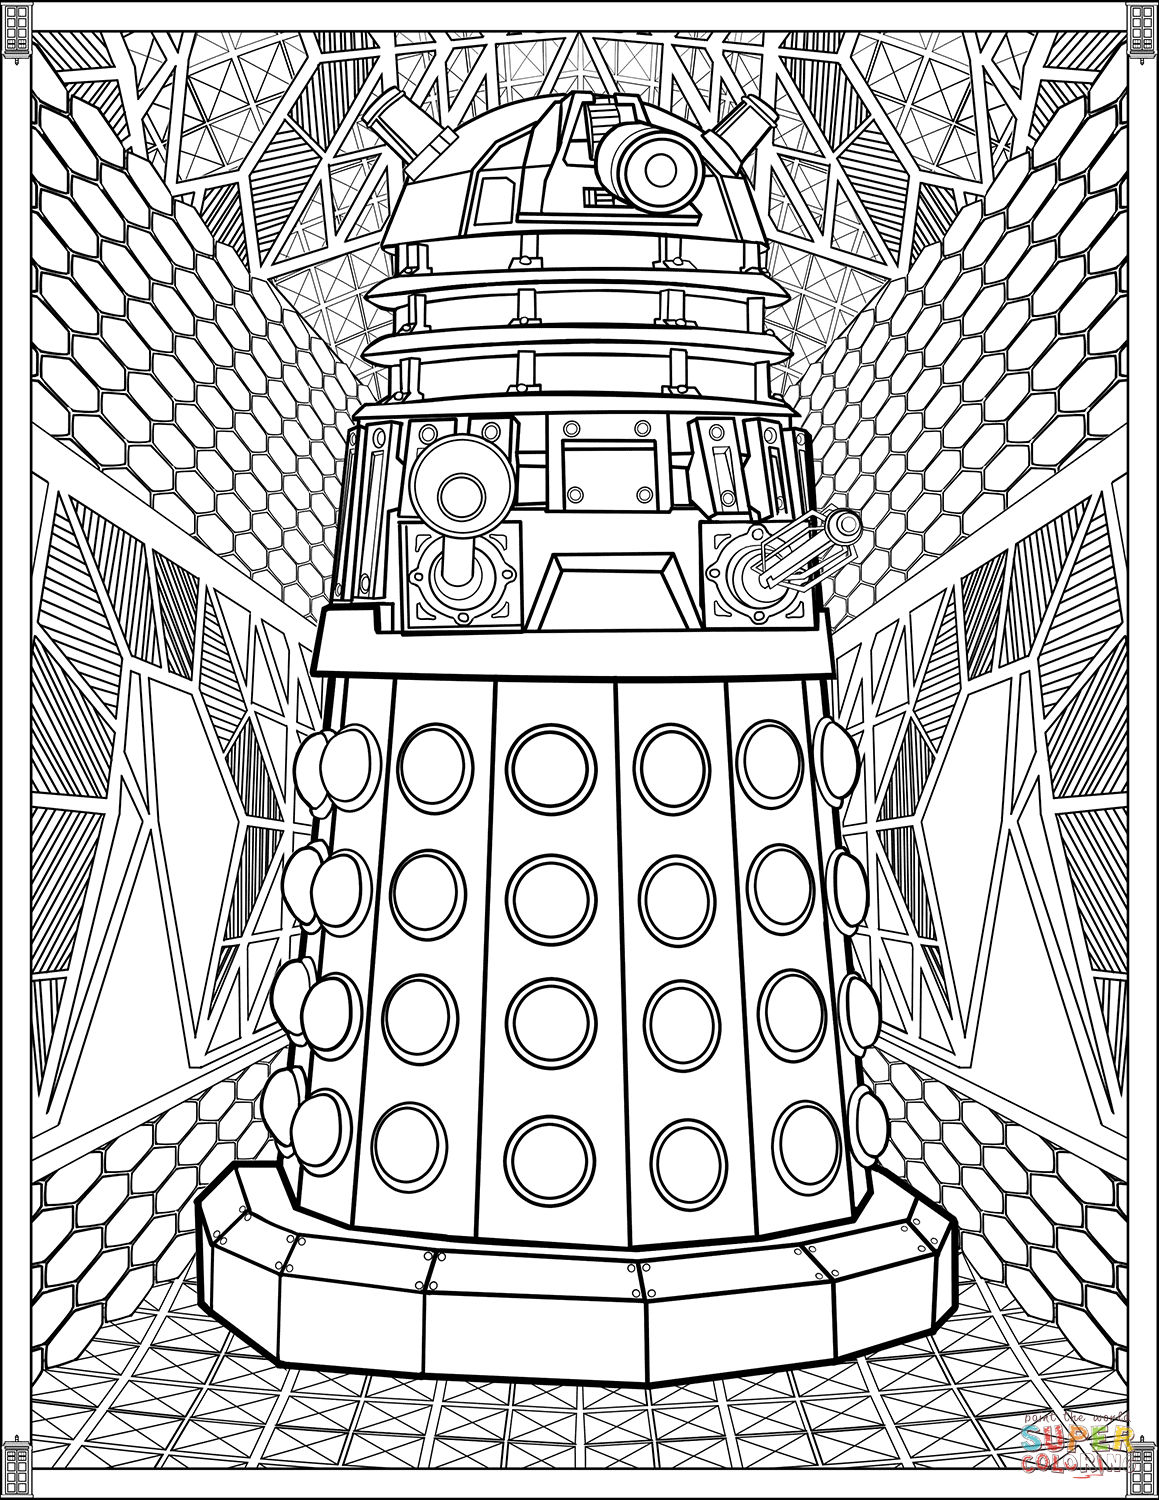 dalek pictures to colour dalek drawing at getdrawings free download colour dalek to pictures